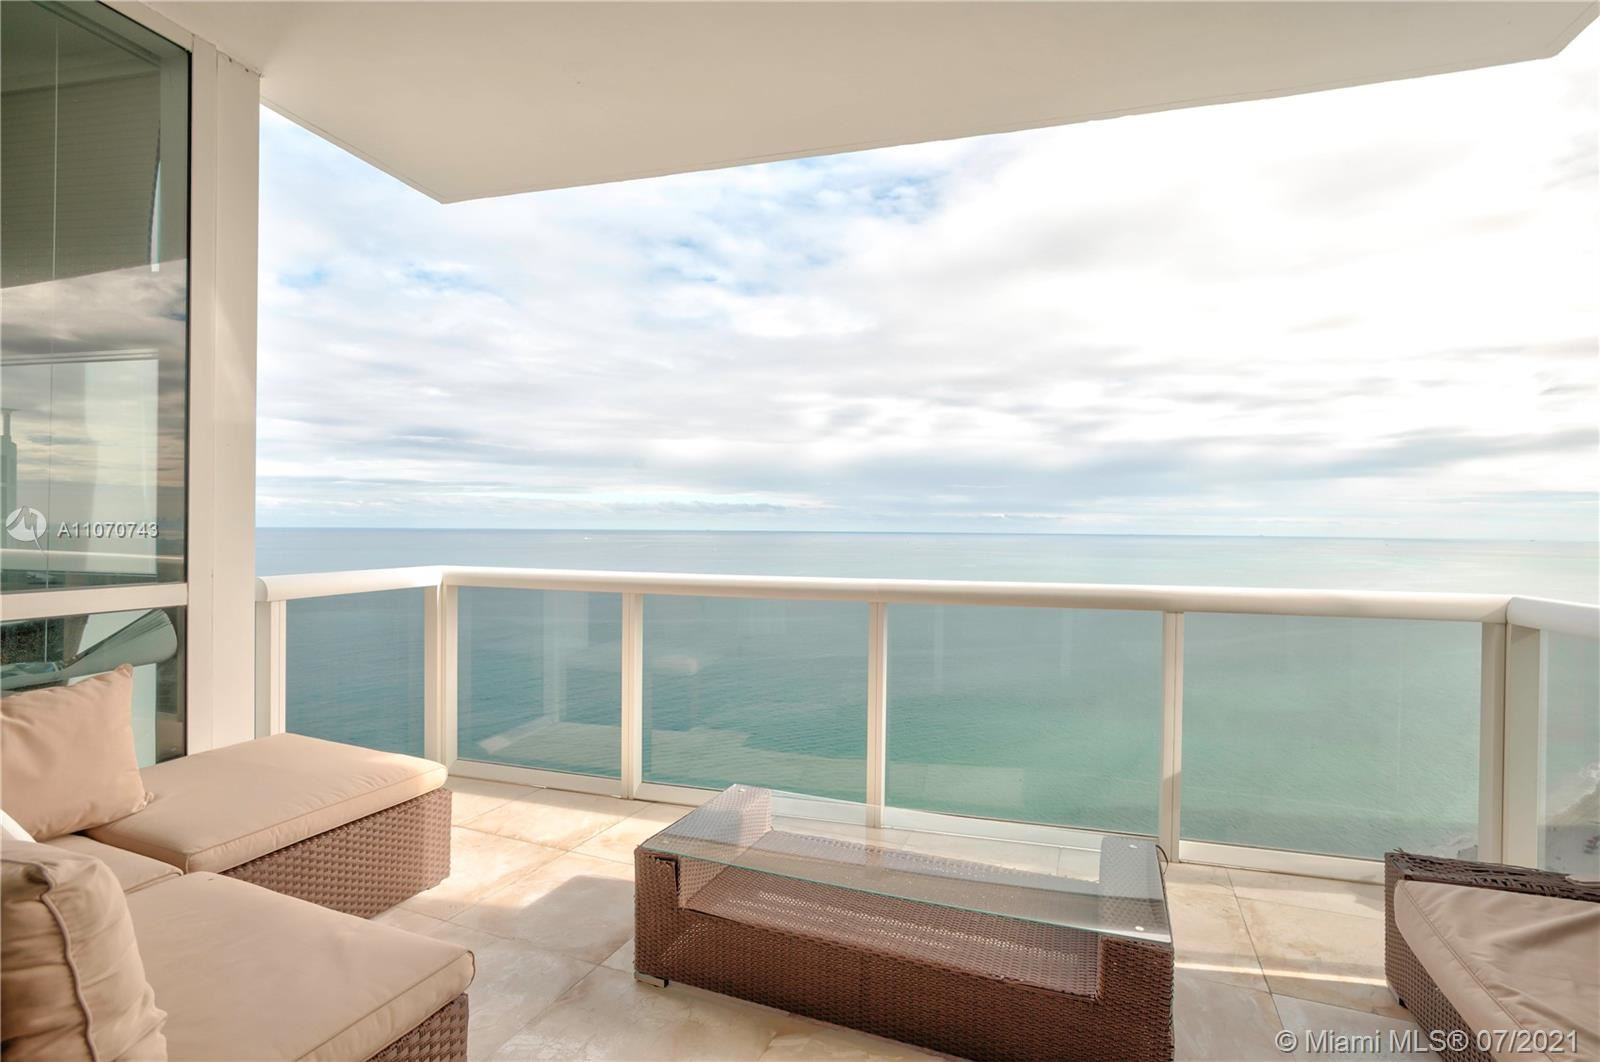 18101 Collins Ave #4208, Sunny Isles, FL 33160 - #: A11070743